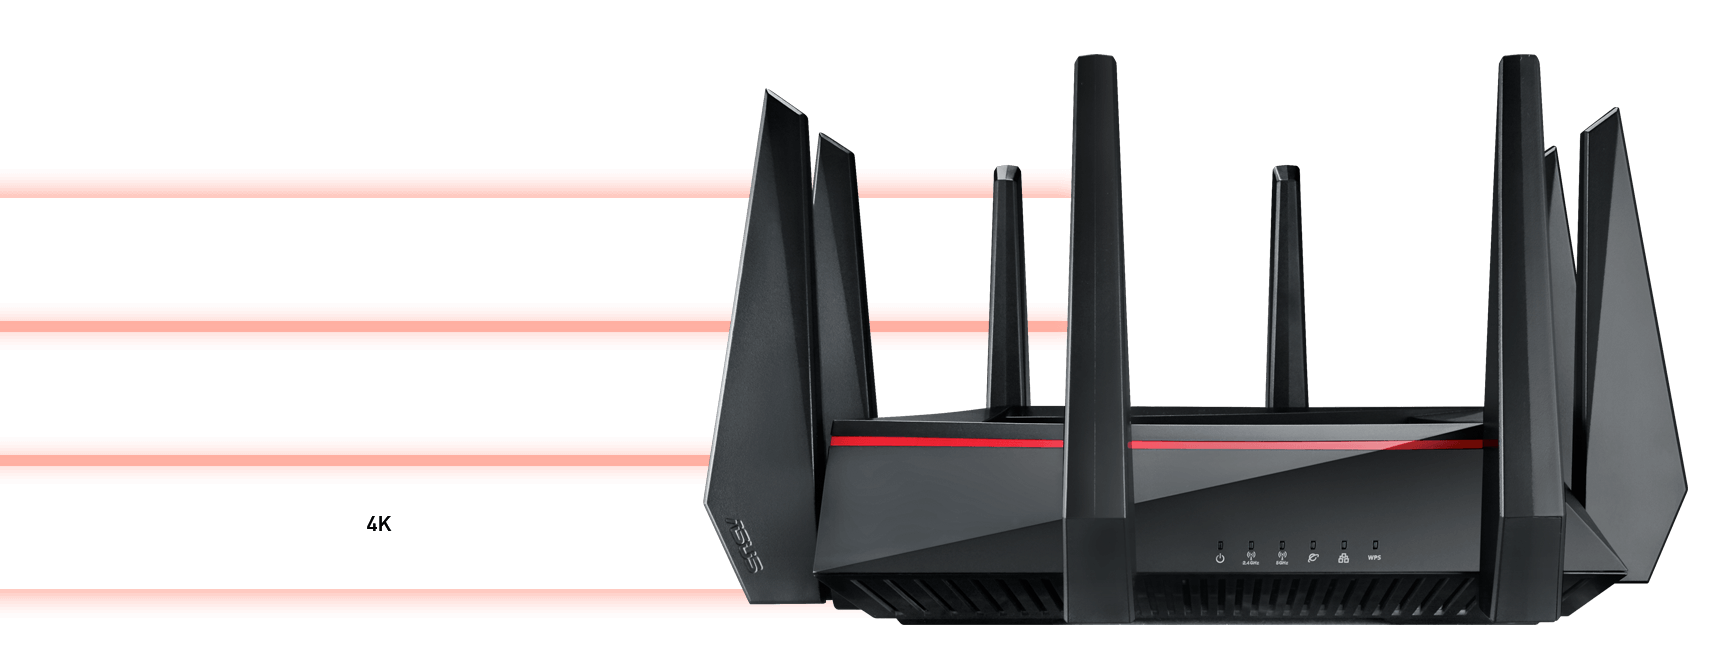 Rt Ac5300 Networking Asus Usa Wireless Router Setup Diagram Success Tri Band Smart Connect Intelligently Assigns Each Device To Best Available This Means You Get Better Range And Faster More Reliable Connections